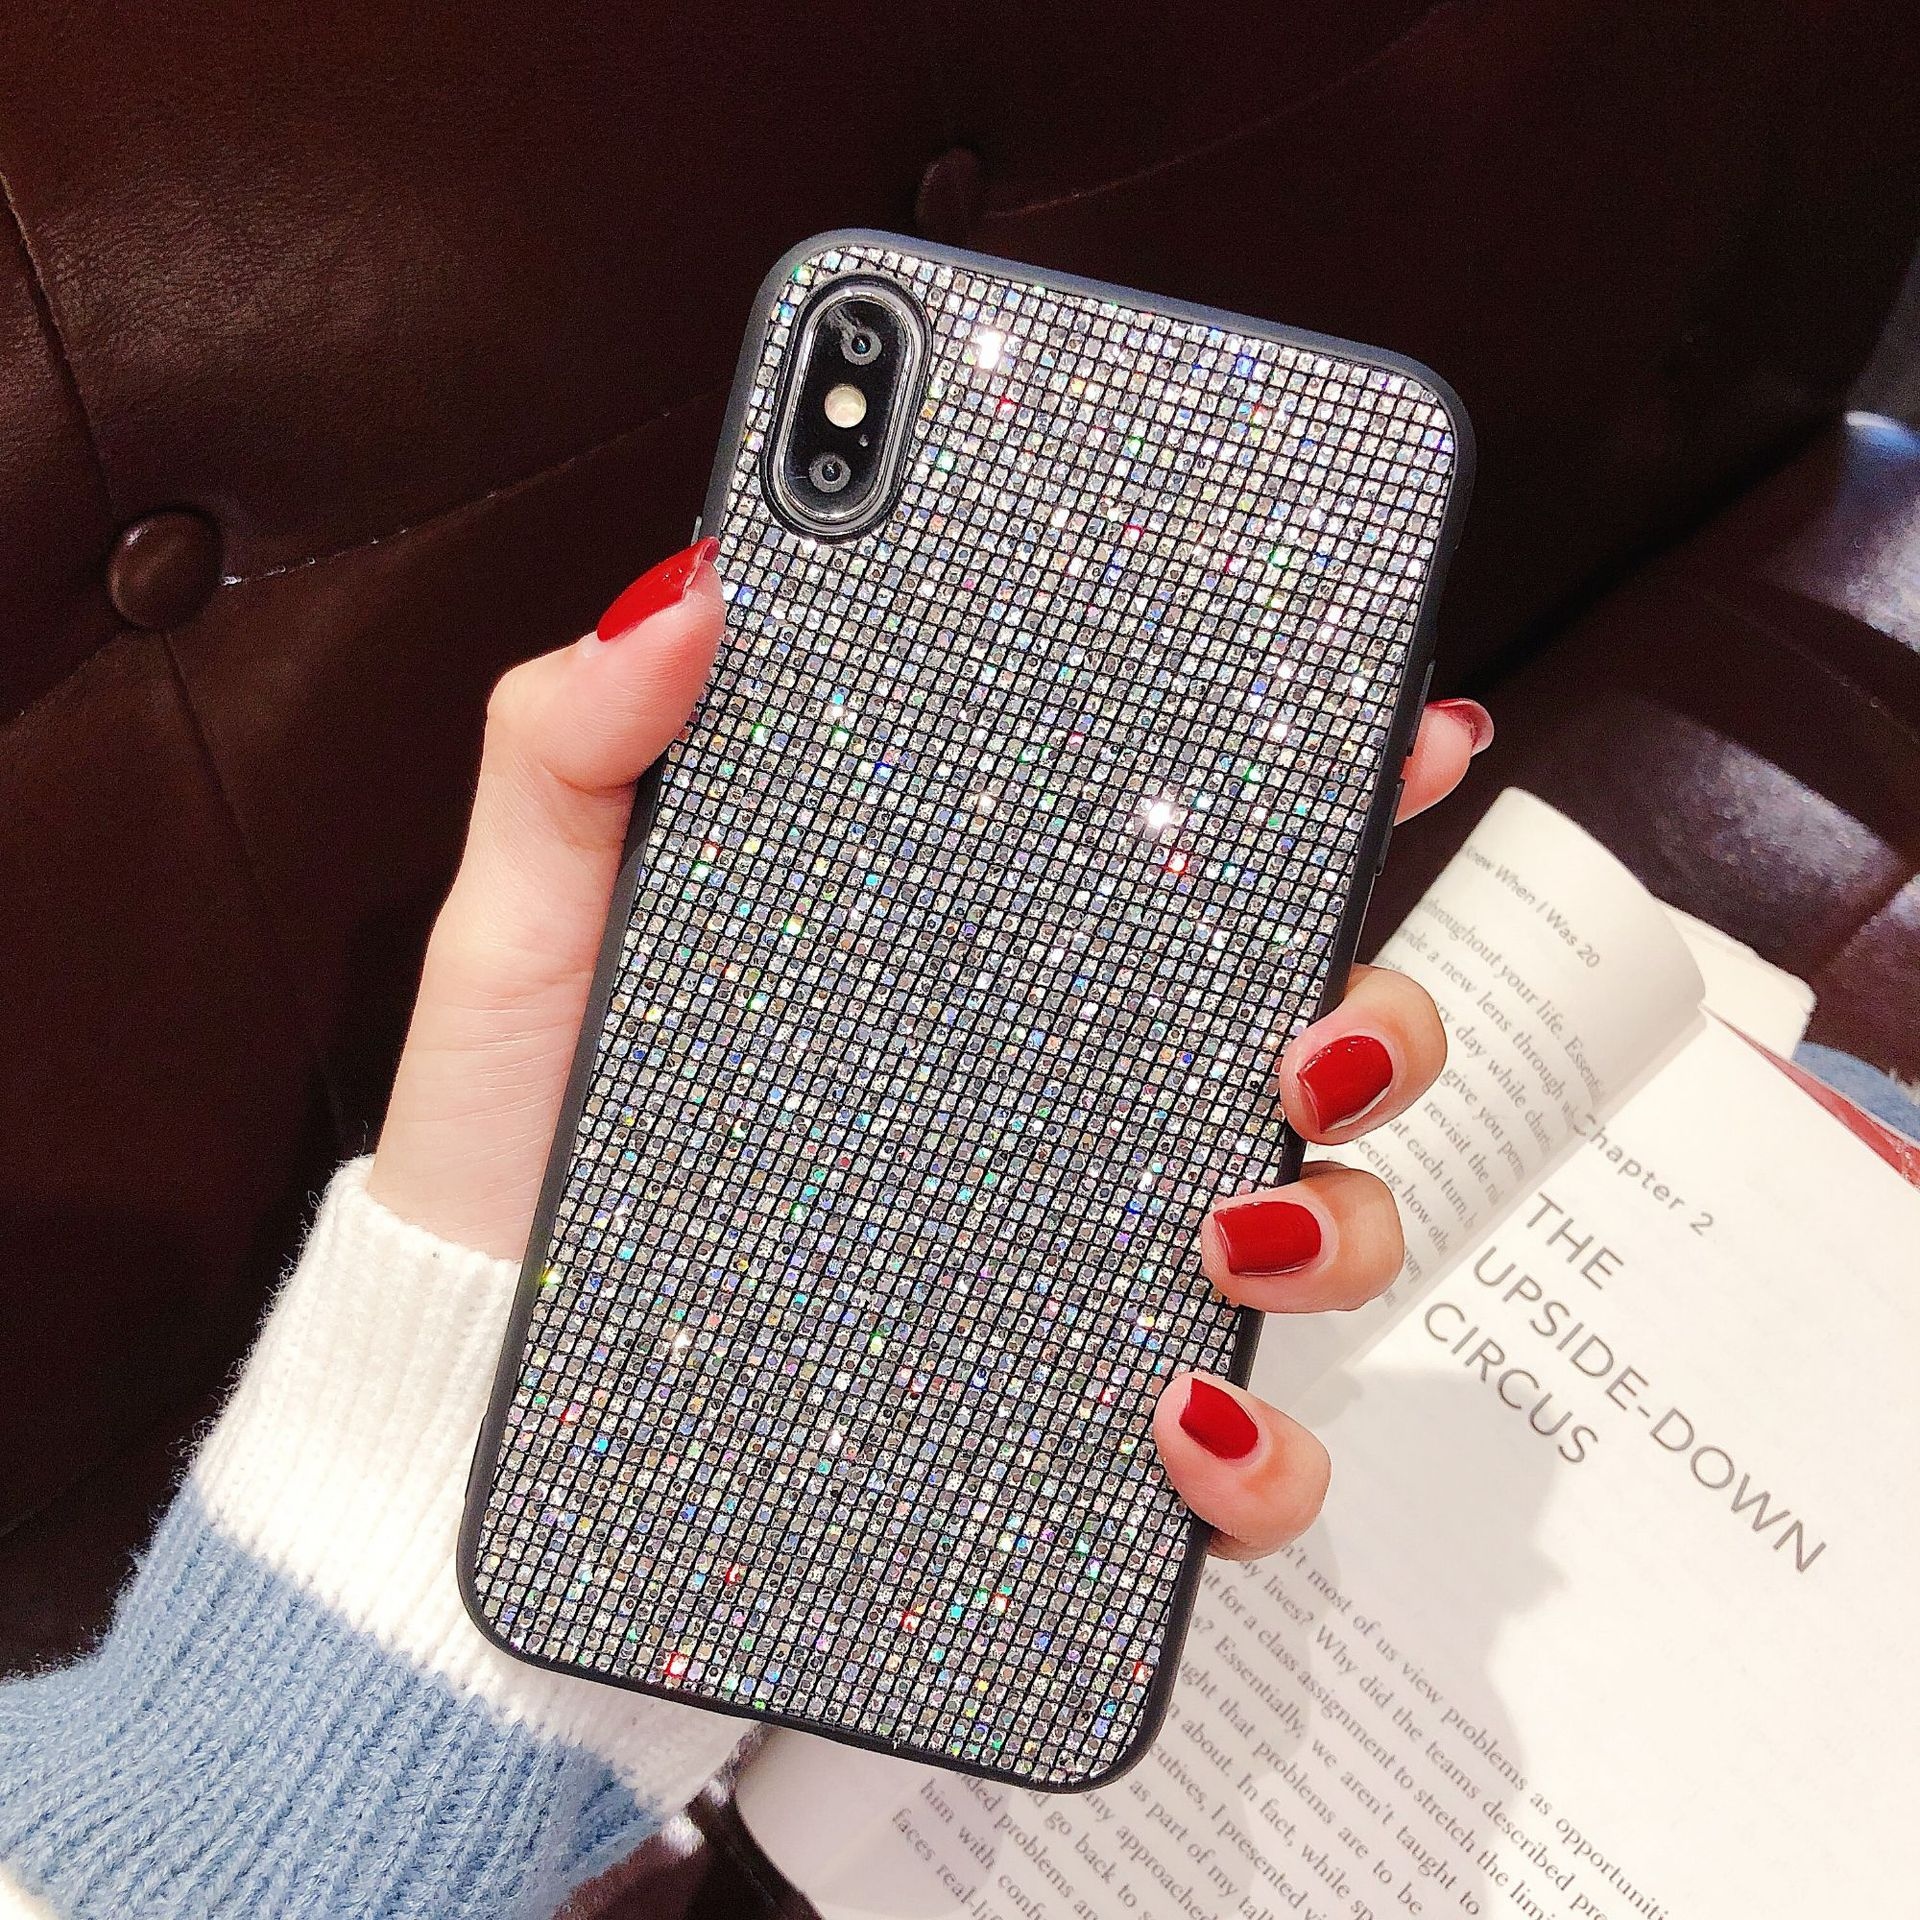 fashion luxury full diamond cellphone case cover for iphone 6/6s 7/8 plus x/xs xr xs max nice gift best price